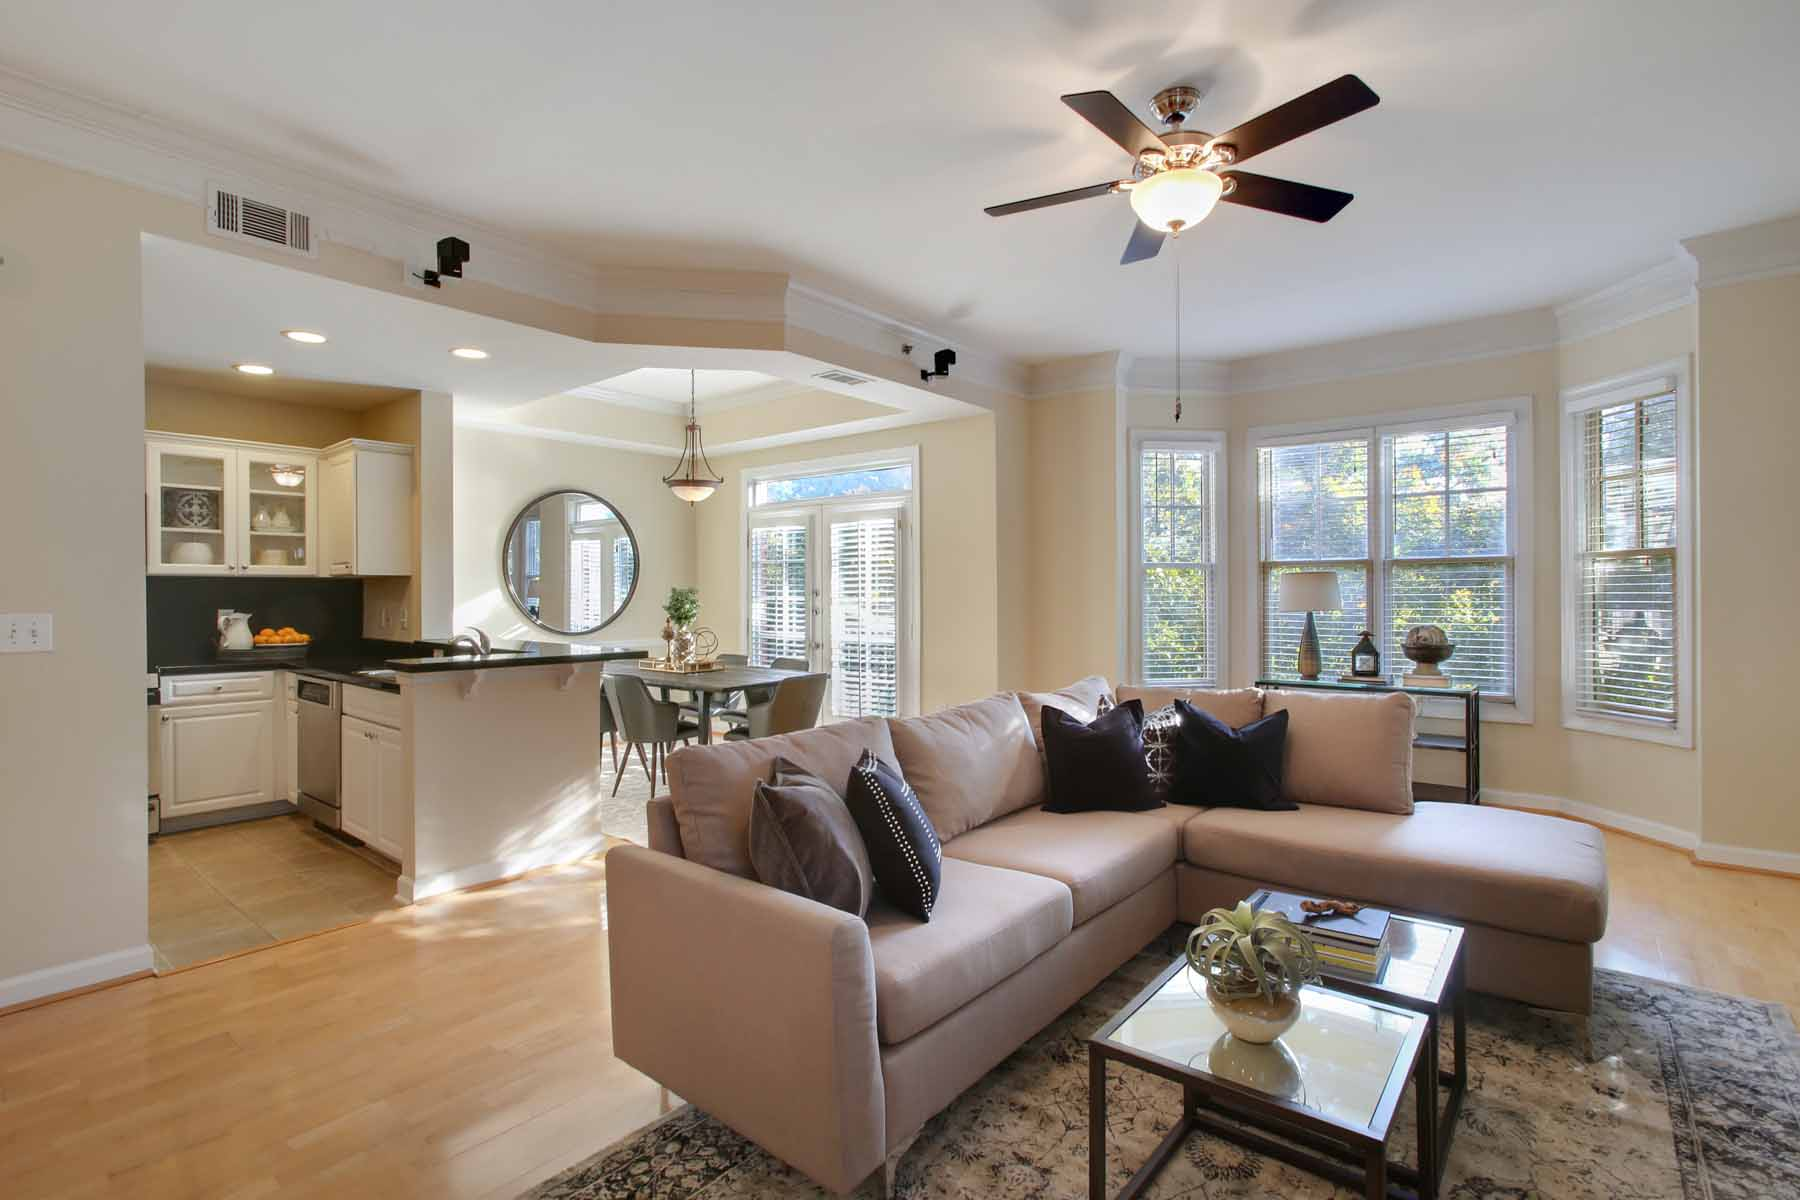 Single Family Home for Sale at Light And Bright Sun-Drenched Corner Unit Townhome In The Treetops of The Dakota 850 Piedmont Ave 3305 Atlanta, Georgia 30308 United States